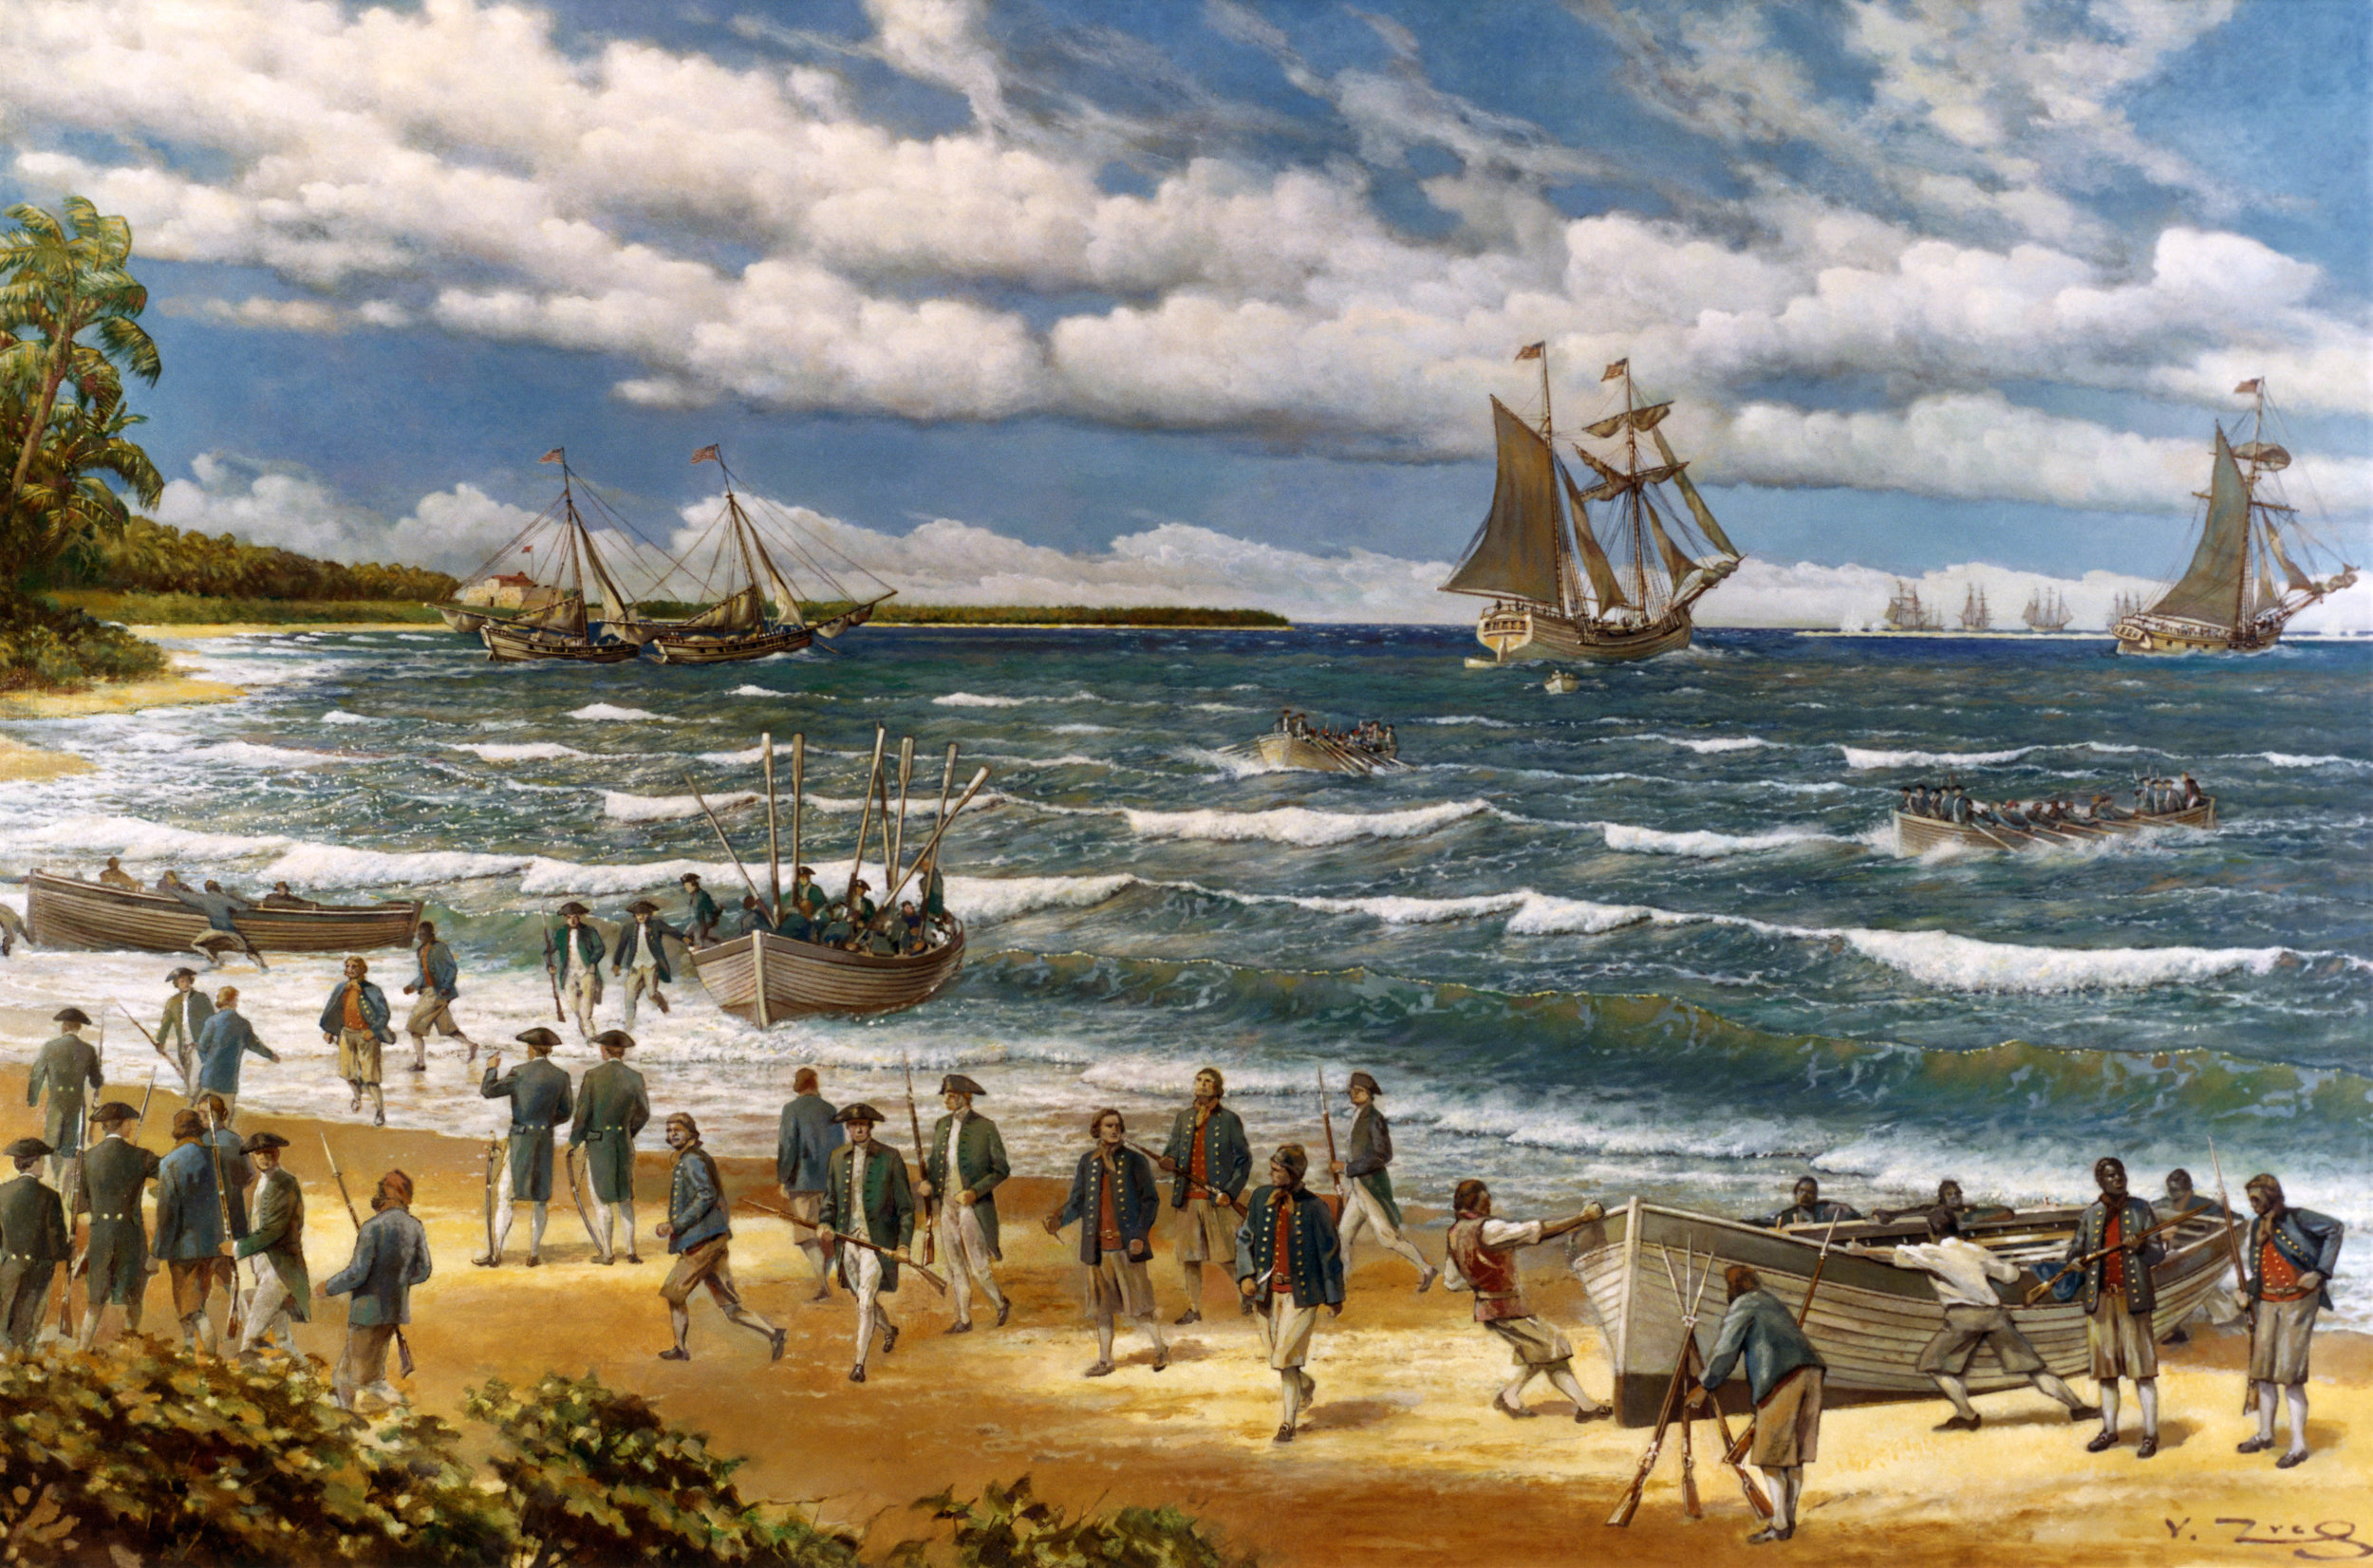 Oil painting on canvas by V. Zveg, 1973 depicting Continental Sailors and Marines landing on New Providence Island, Bahamas, on 3 March 1776.